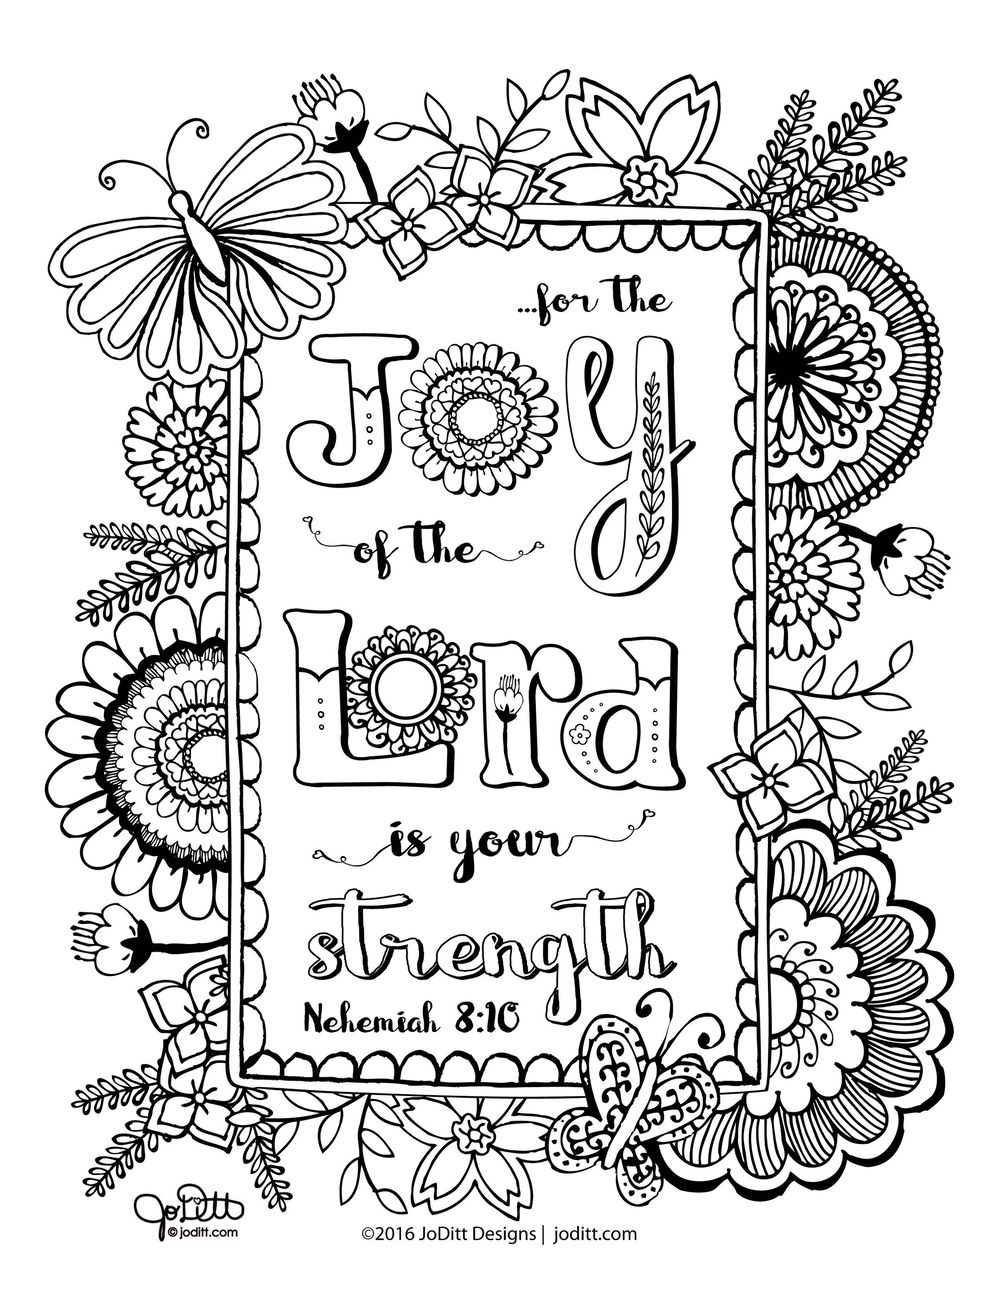 Coloring Book Page - Joy of the Lord - image 1 - student project